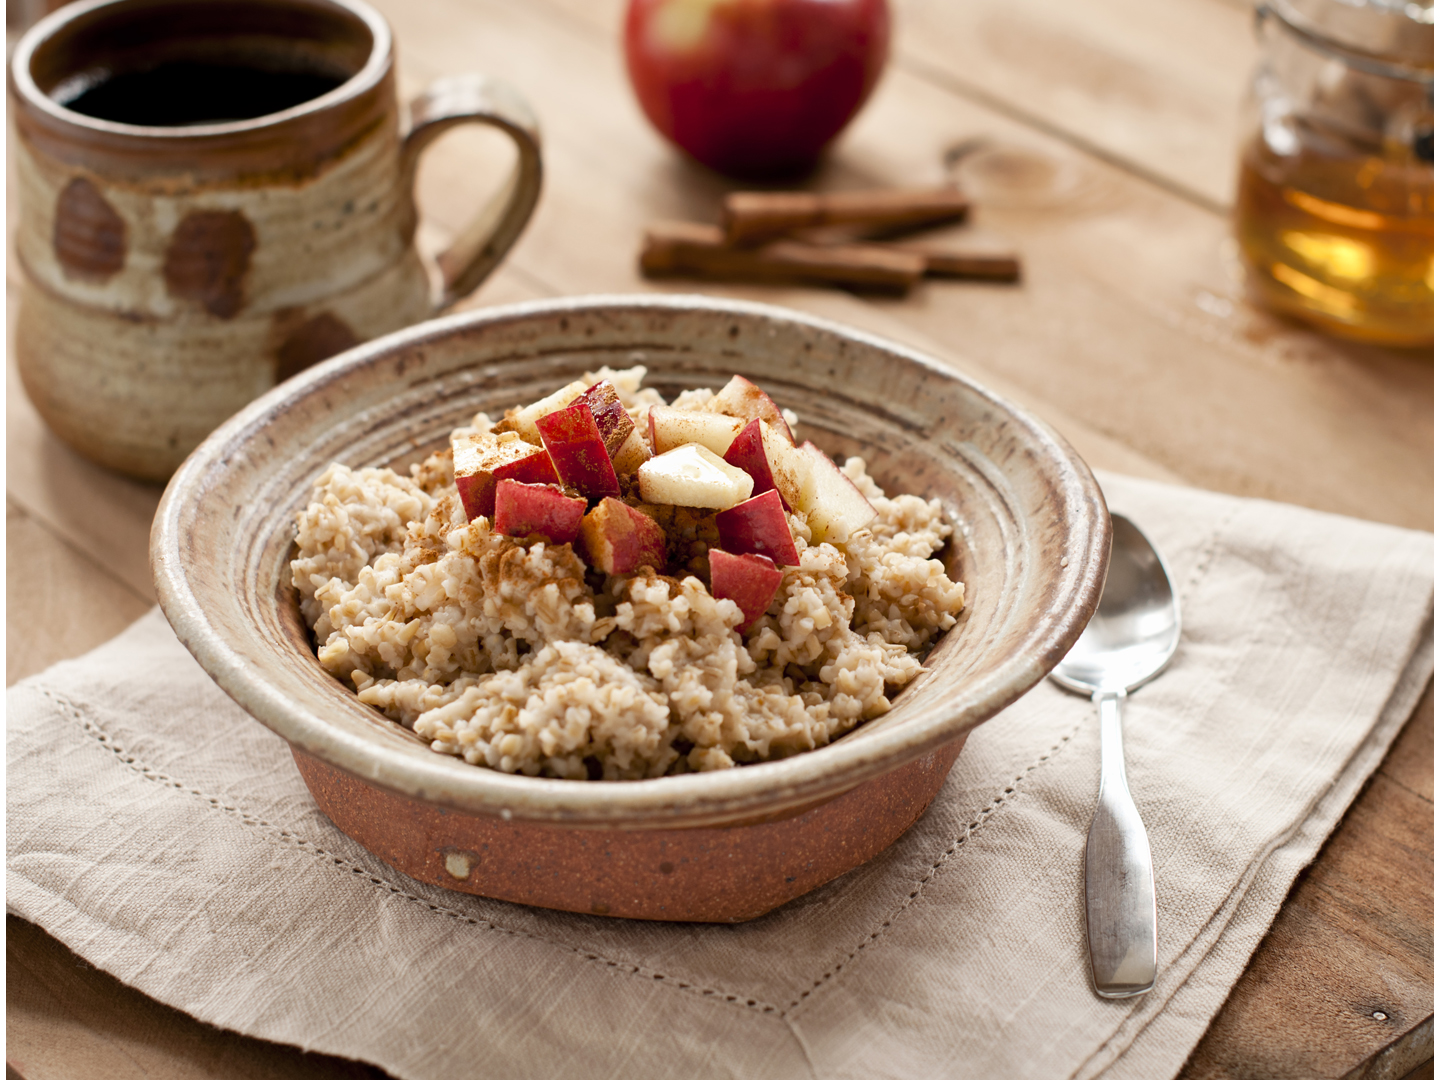 Rustic pottery bowl of steel cut oatmeal with apples, honey, and cinnamon and a cup of coffee.